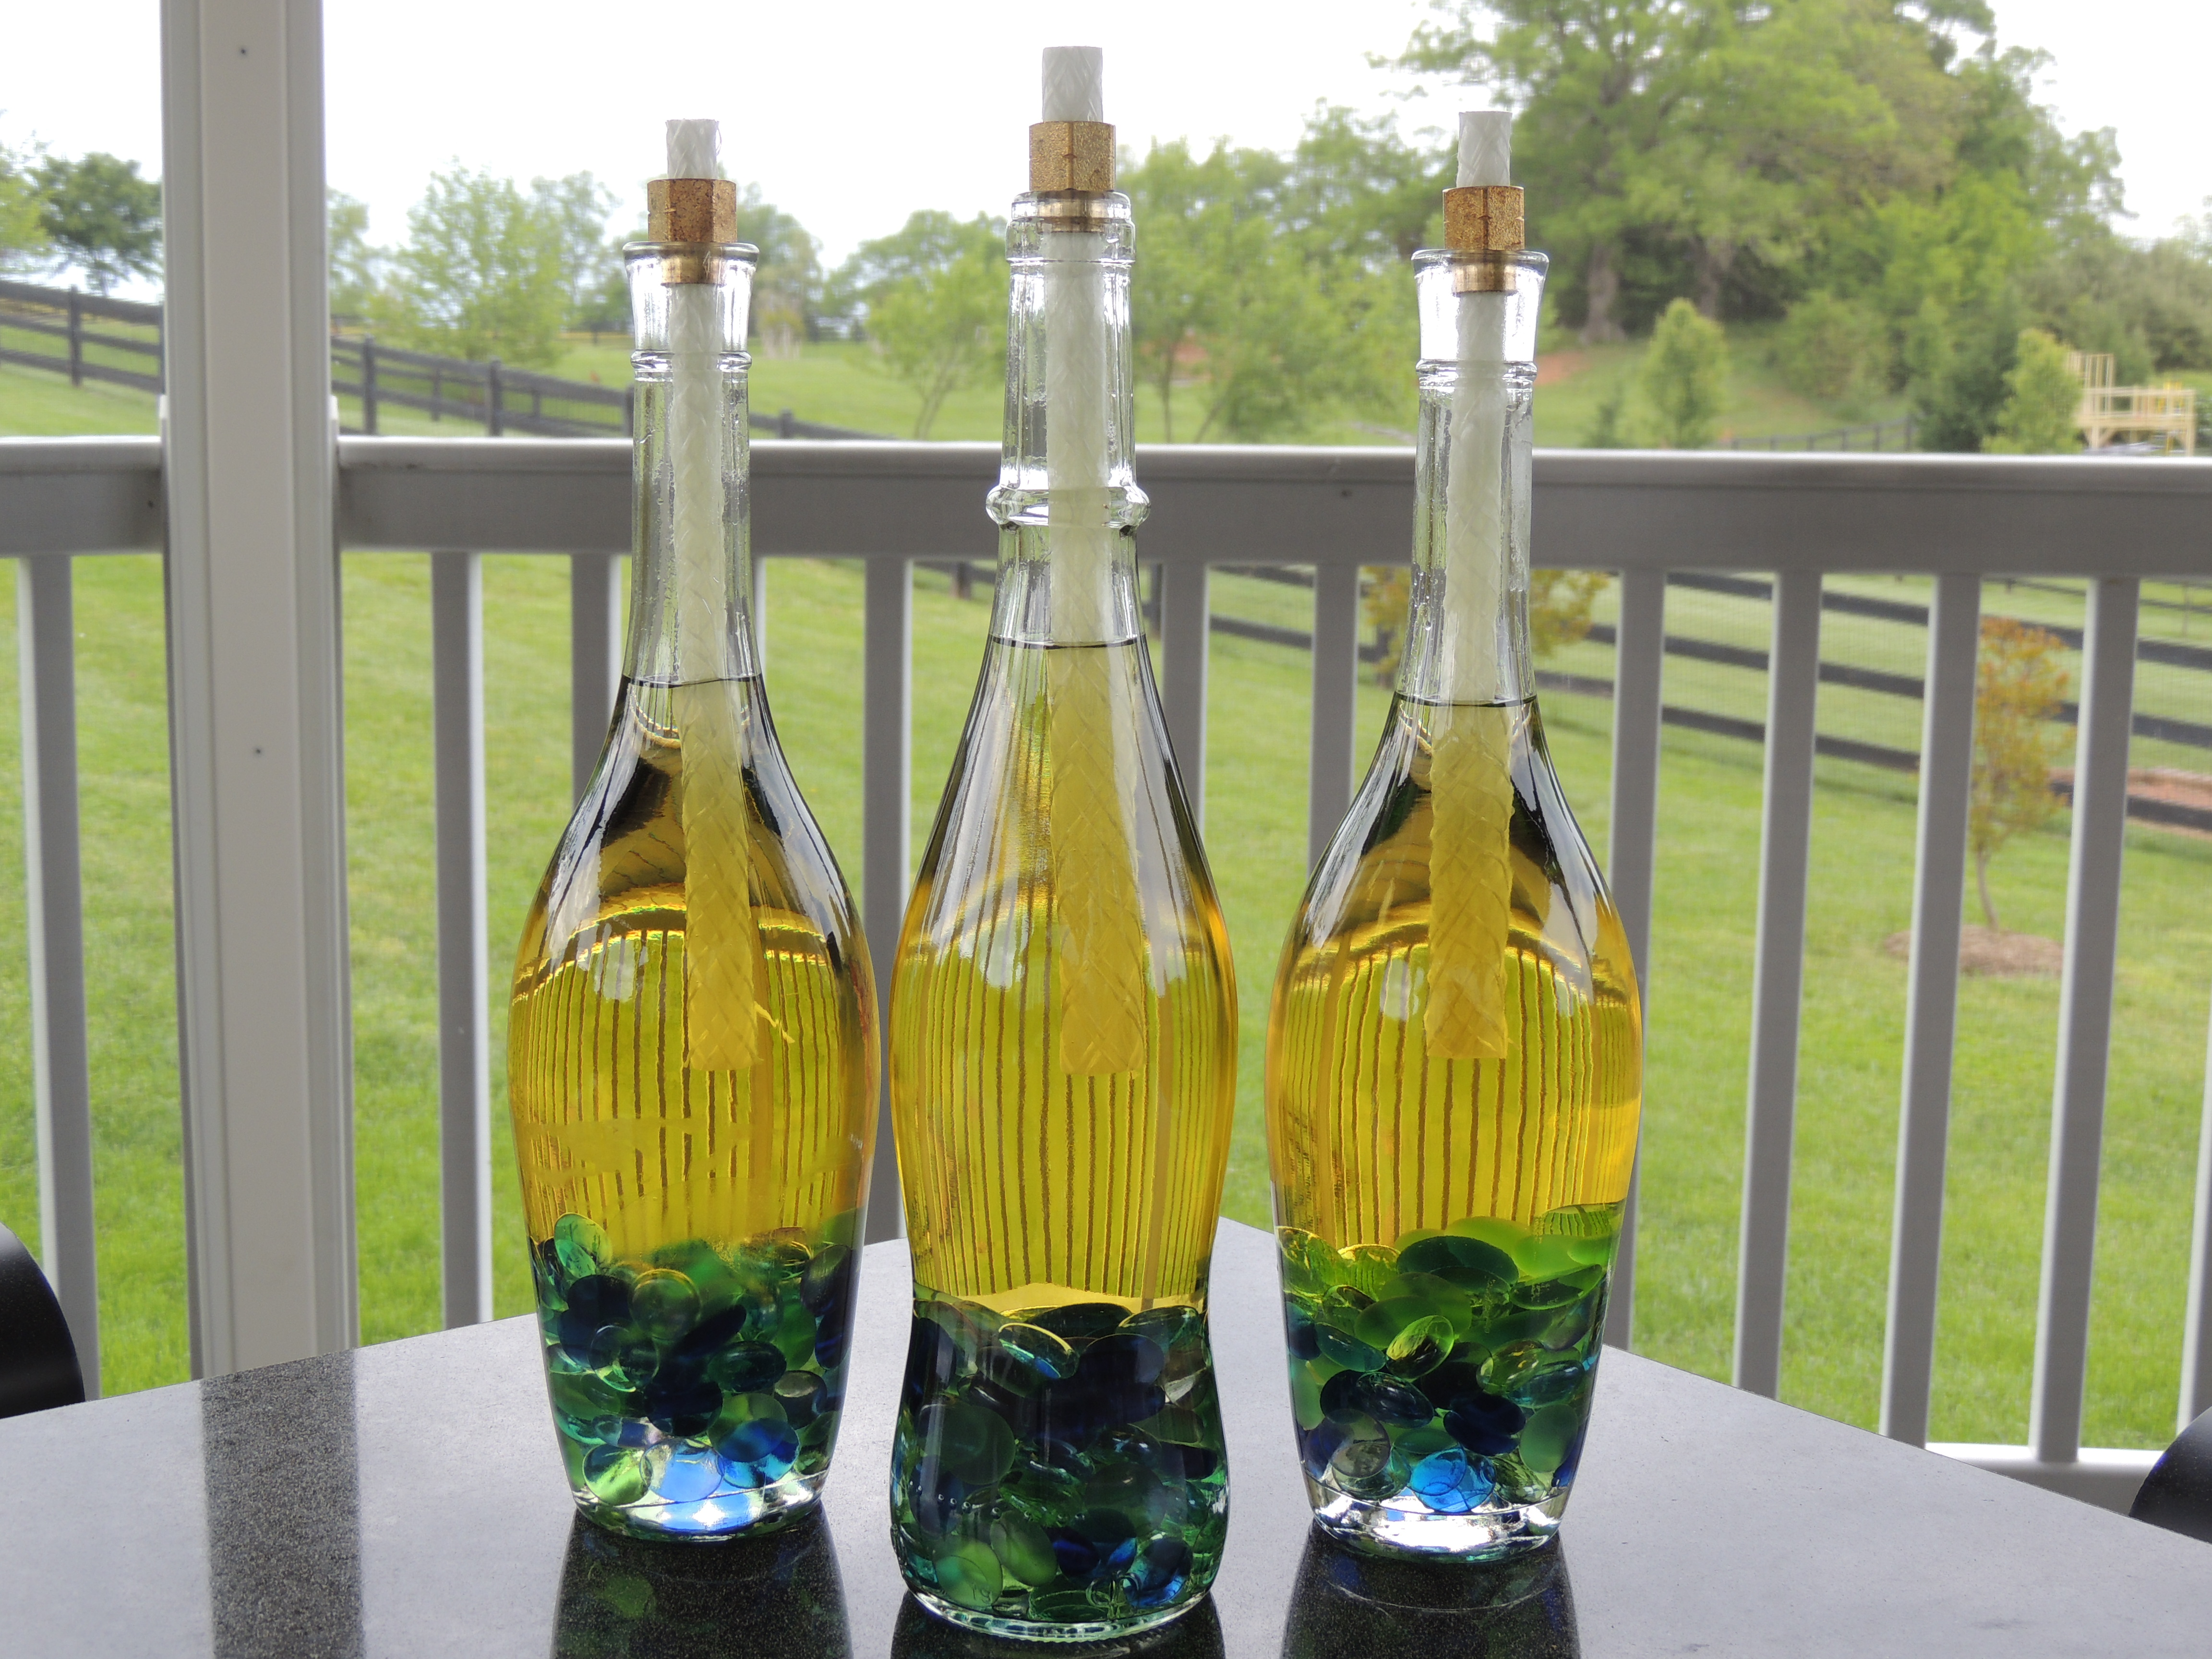 What to do with empty wine bottles - Wine Bottle Tiki Torches